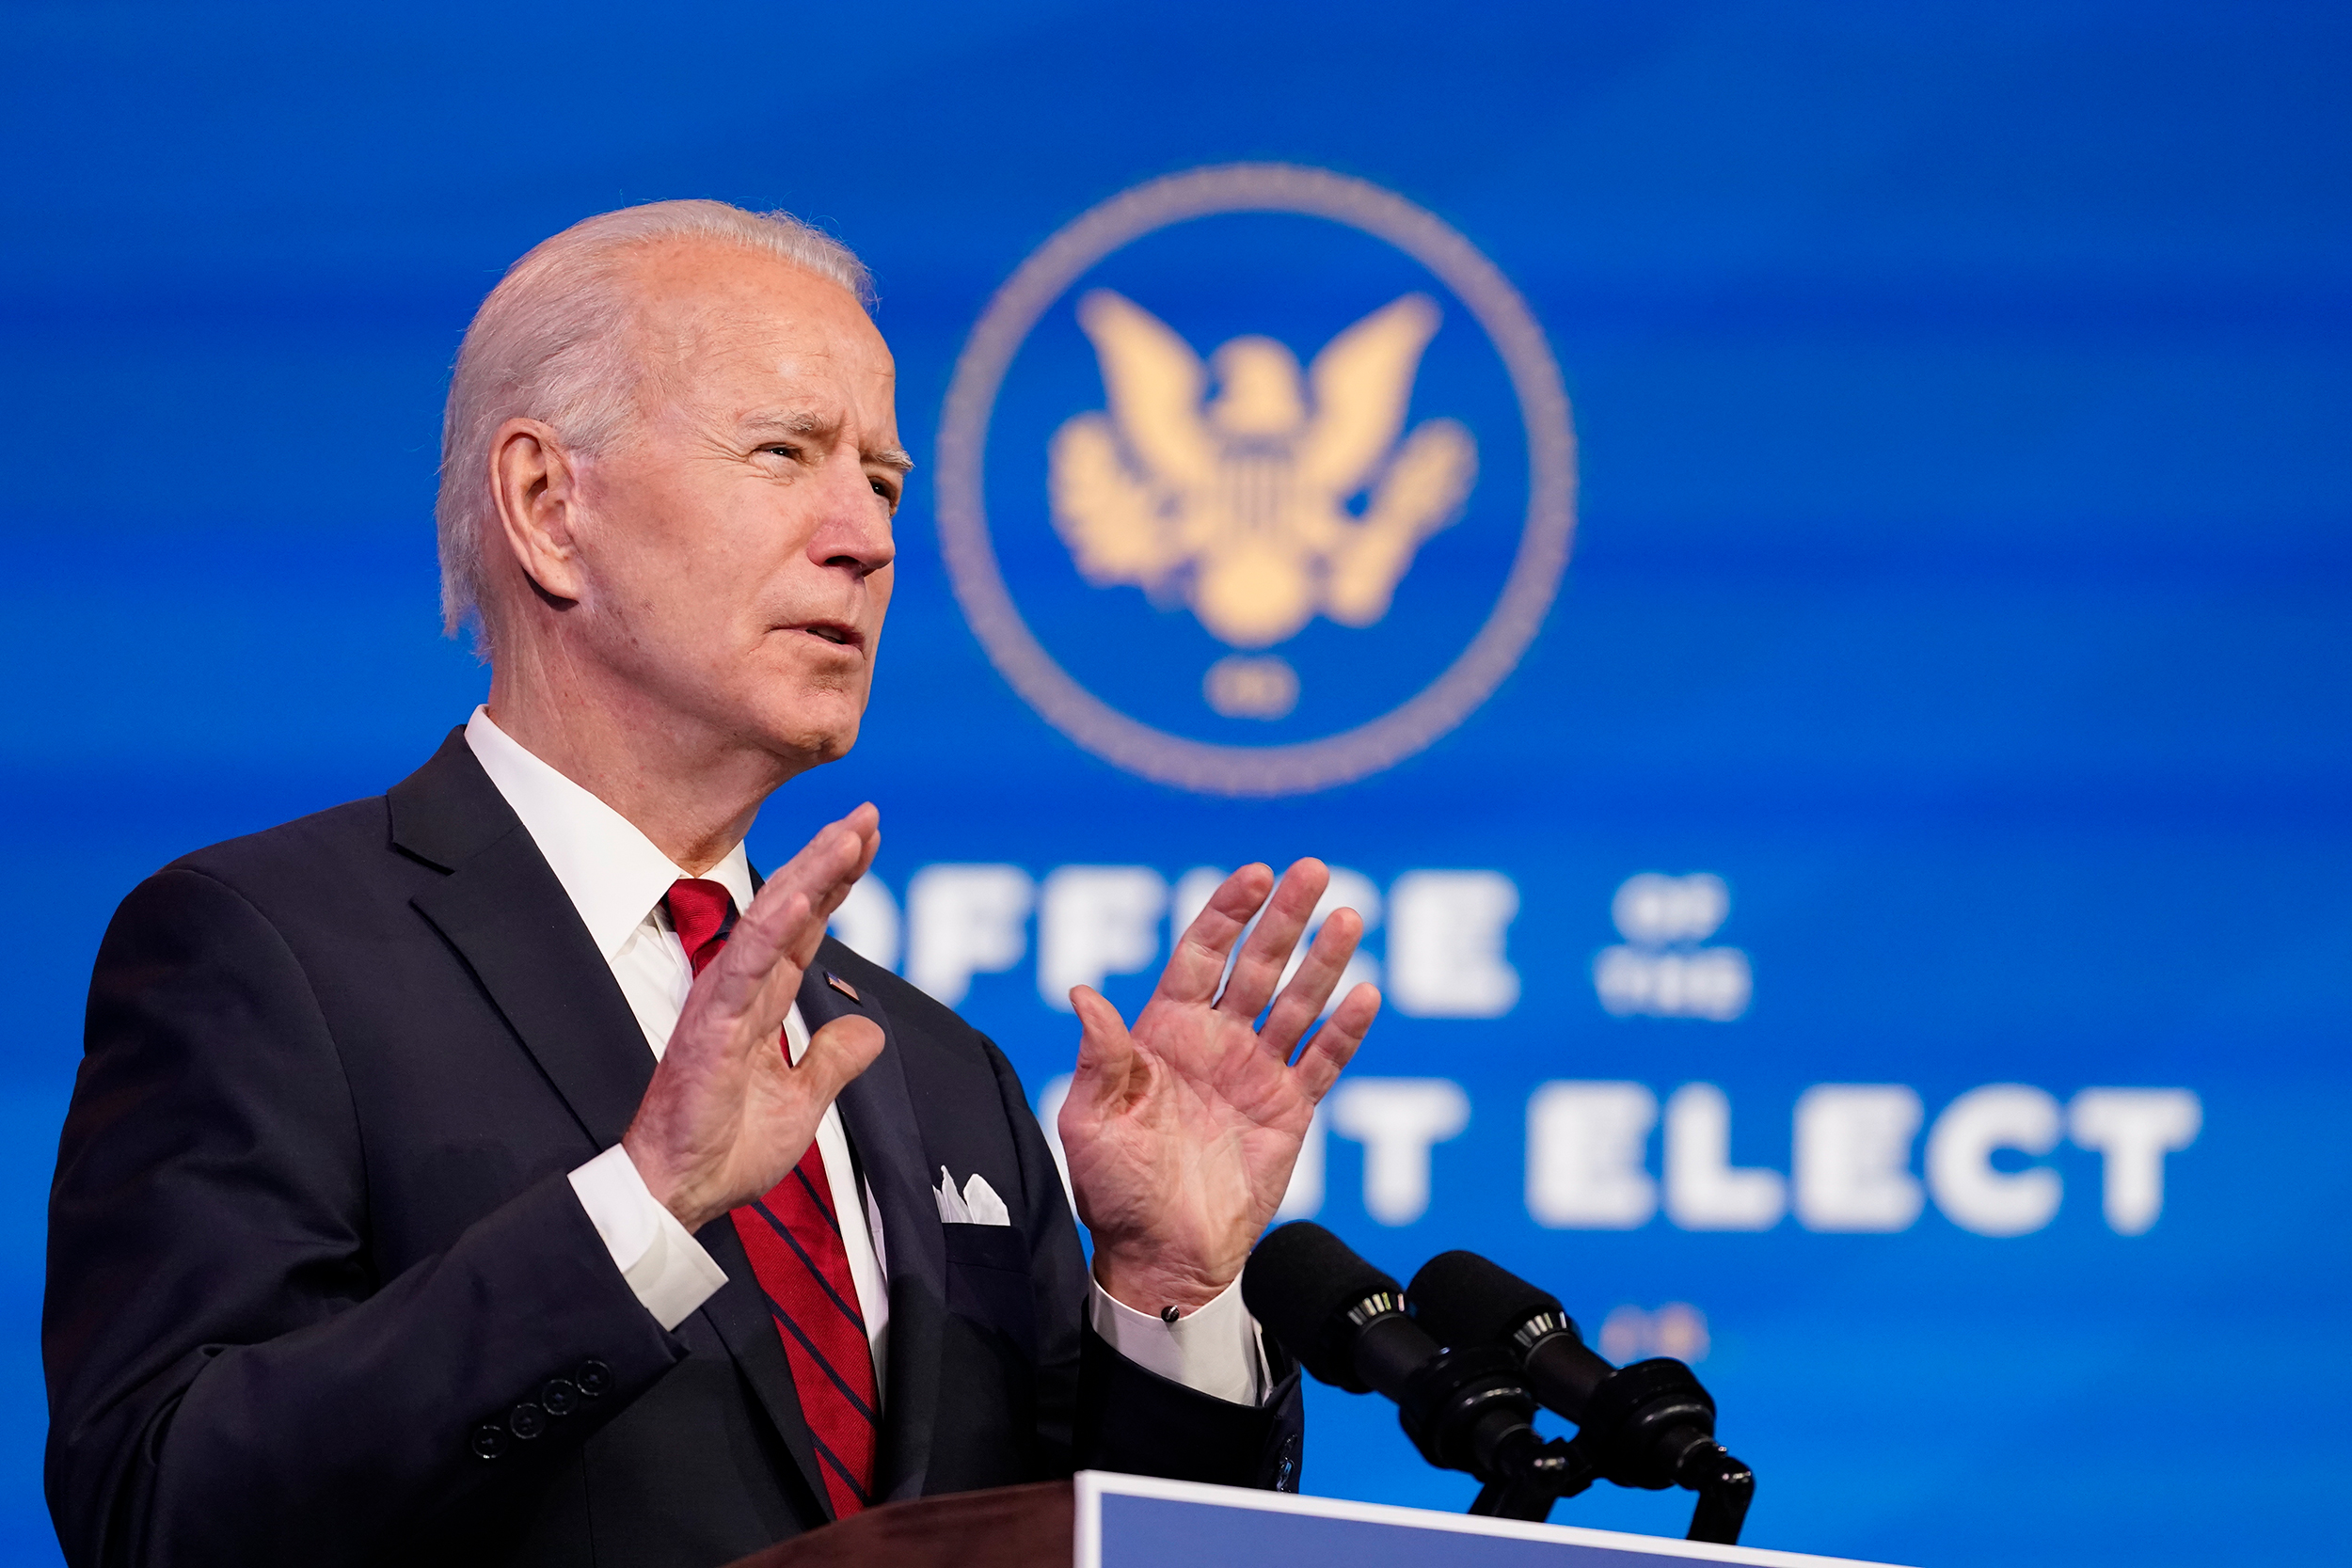 Biden elevates White House science post to Cabinet level